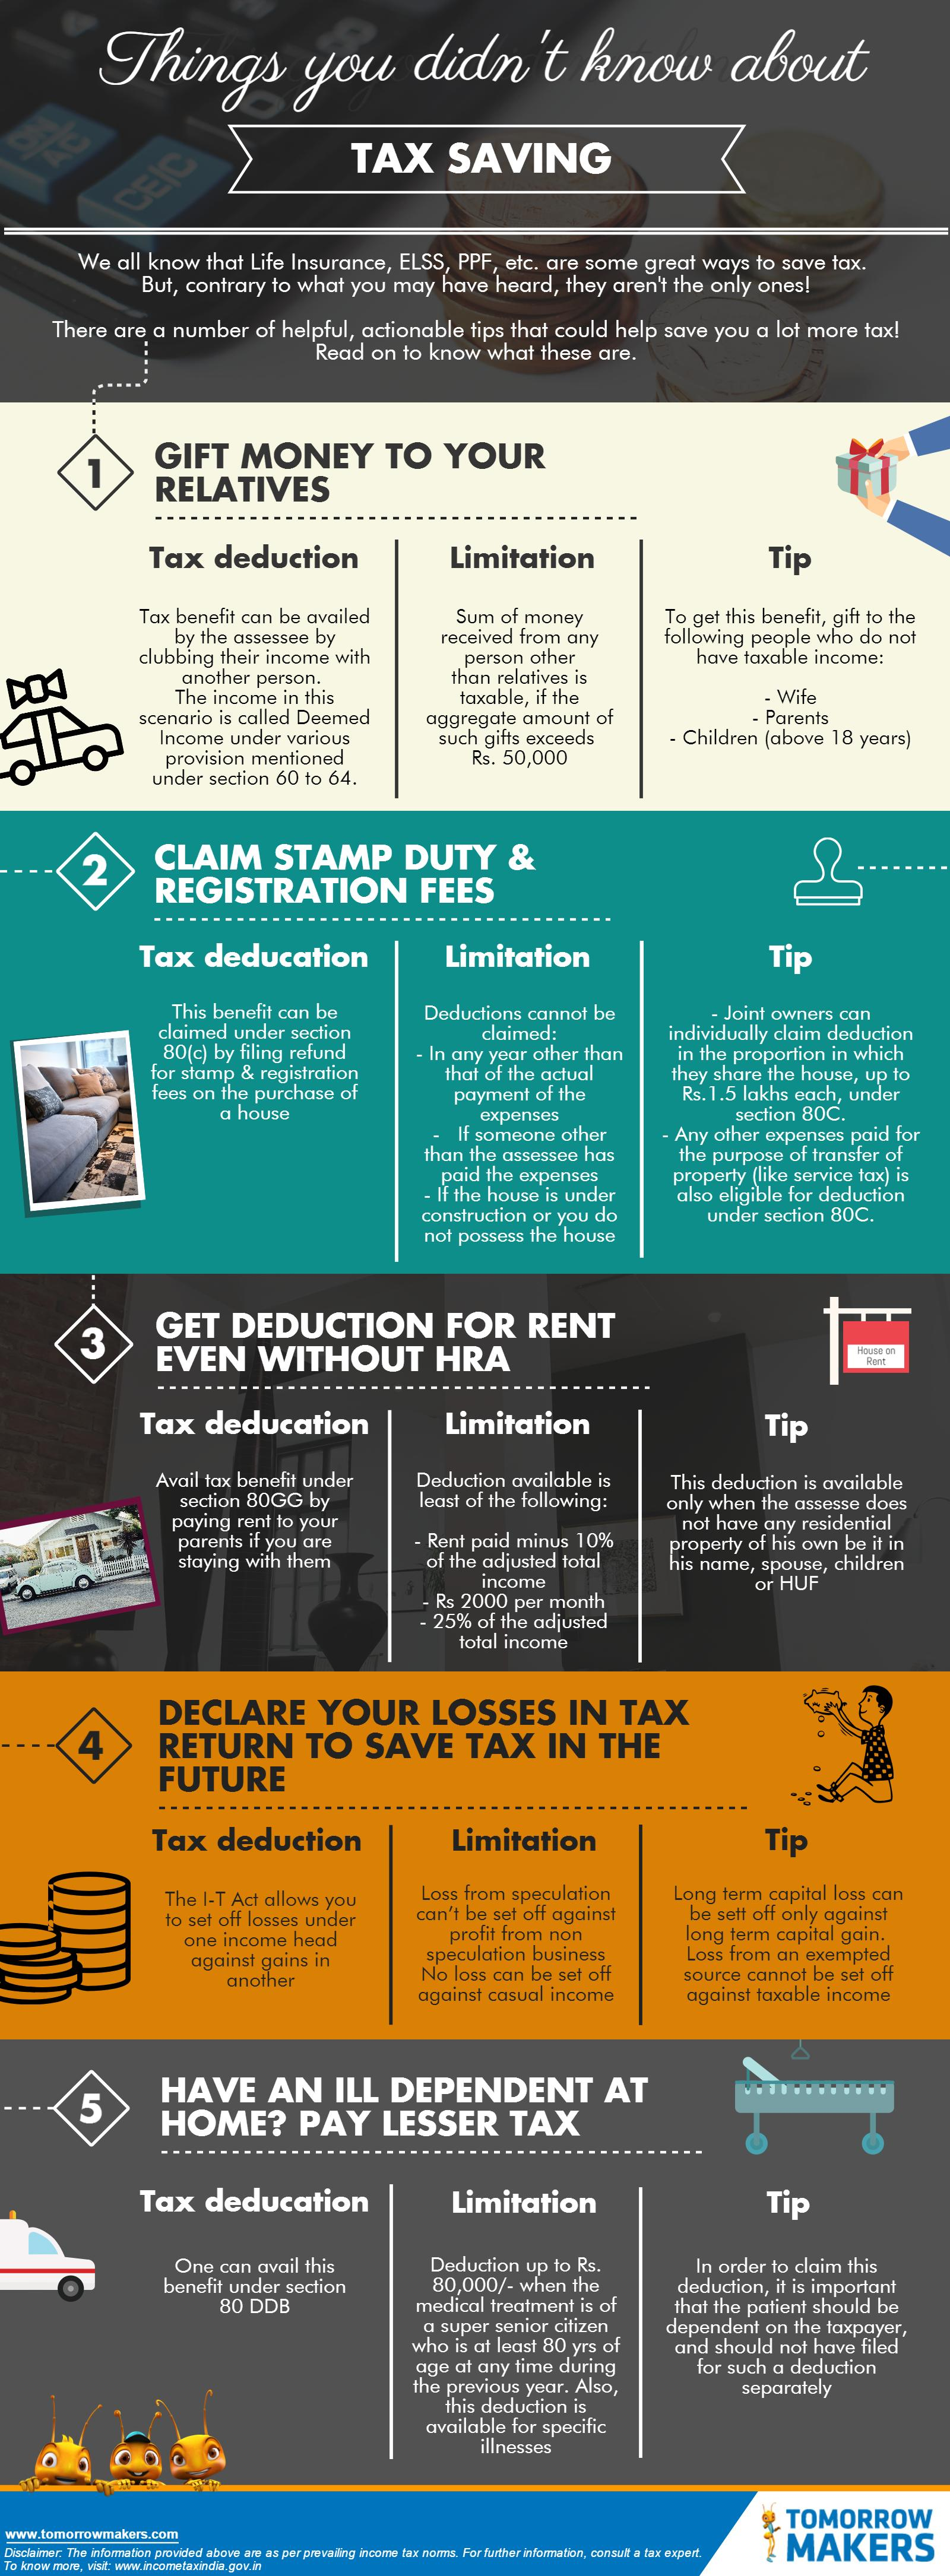 transameric_tax-saving-infographic_revised1